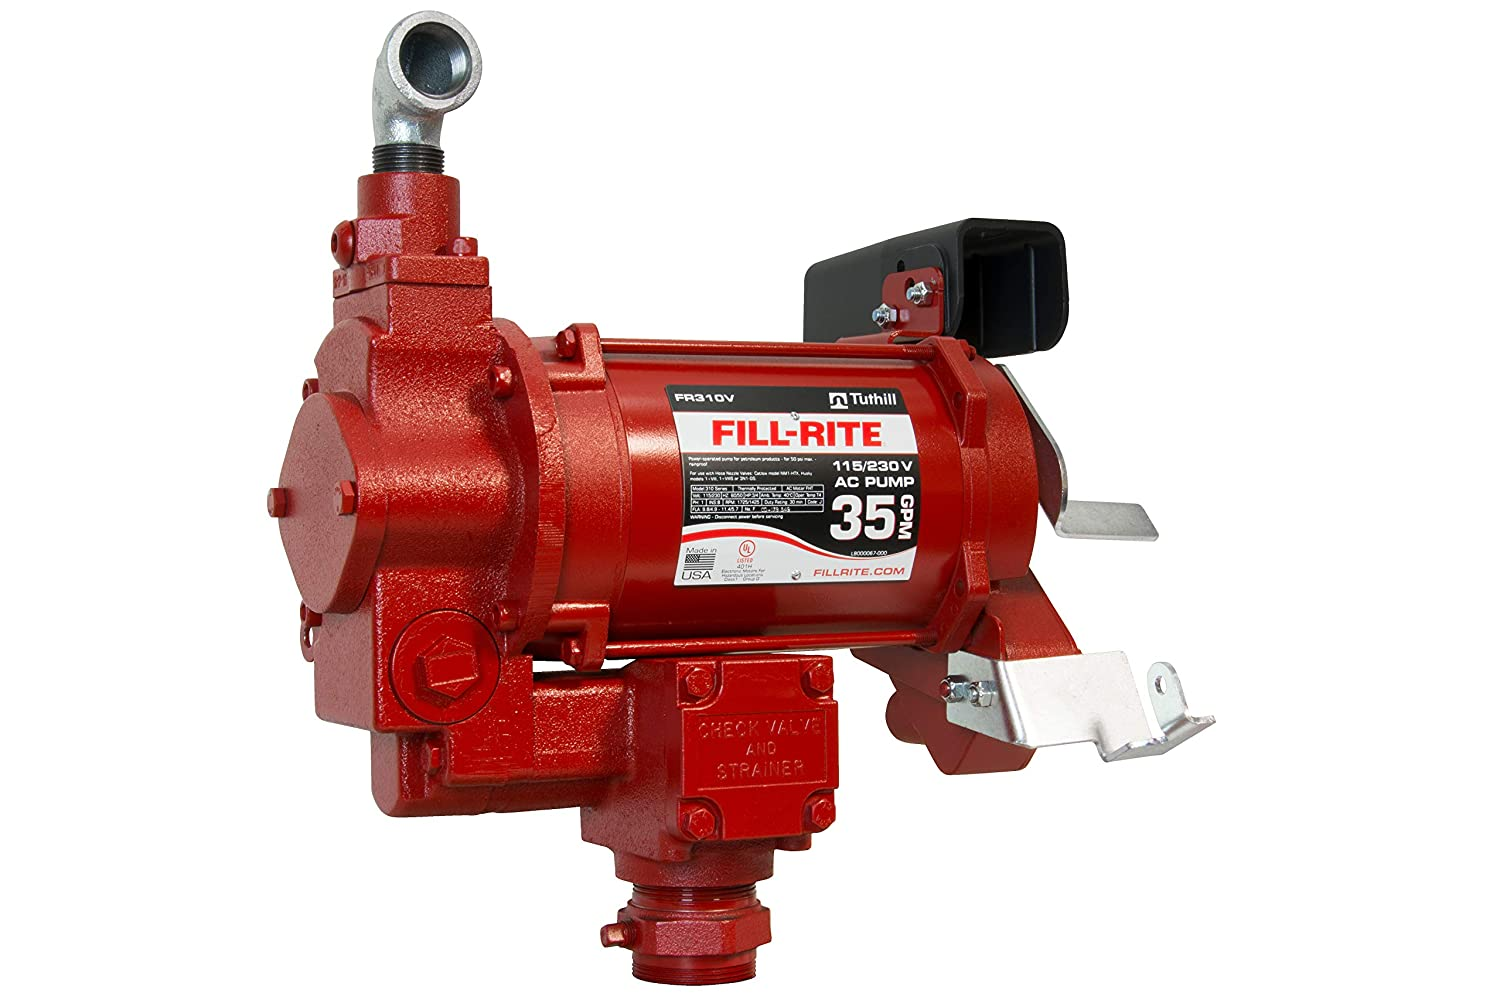 Fill-Rite FR310VN 115 230V 35 New sales Outlet sale feature Only Fuel GPM Pump Transfer